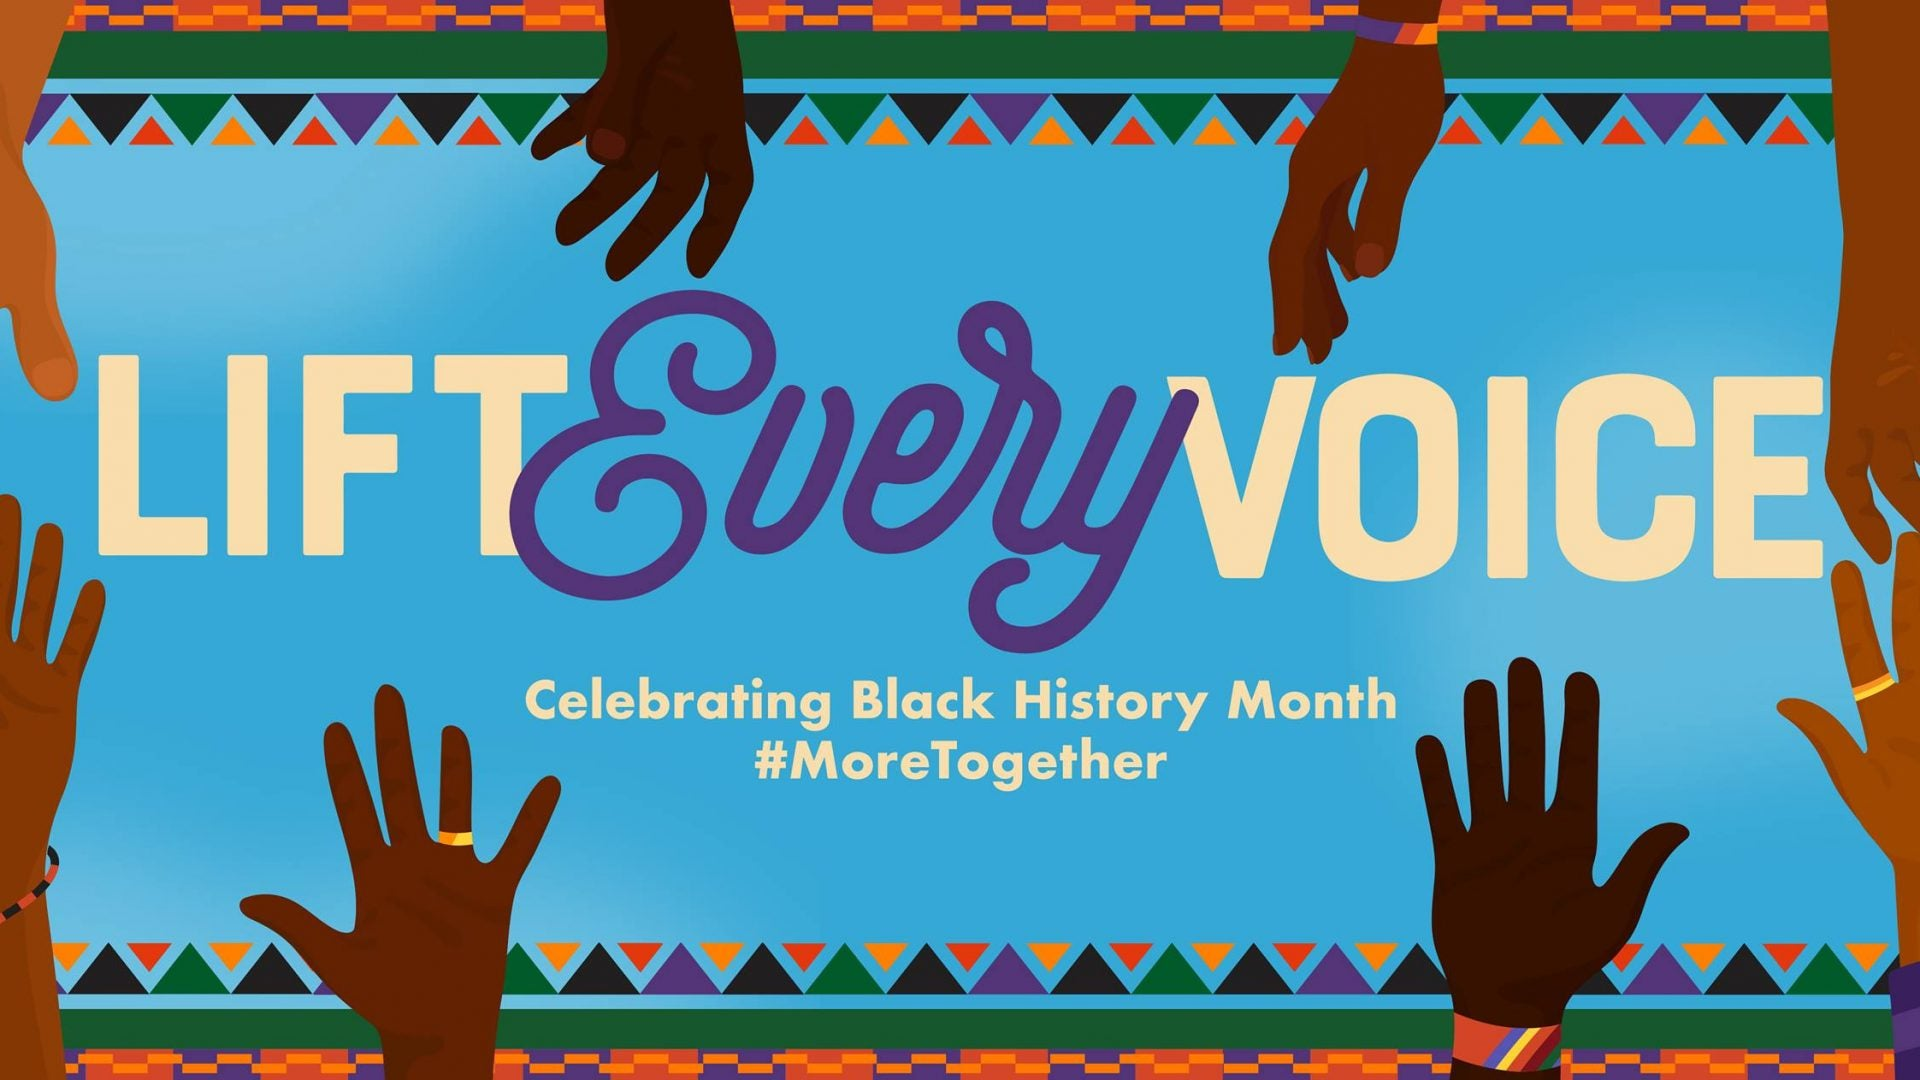 Facebook Honors Black History Month With 'Lift Every Voice' Content Series - Essence